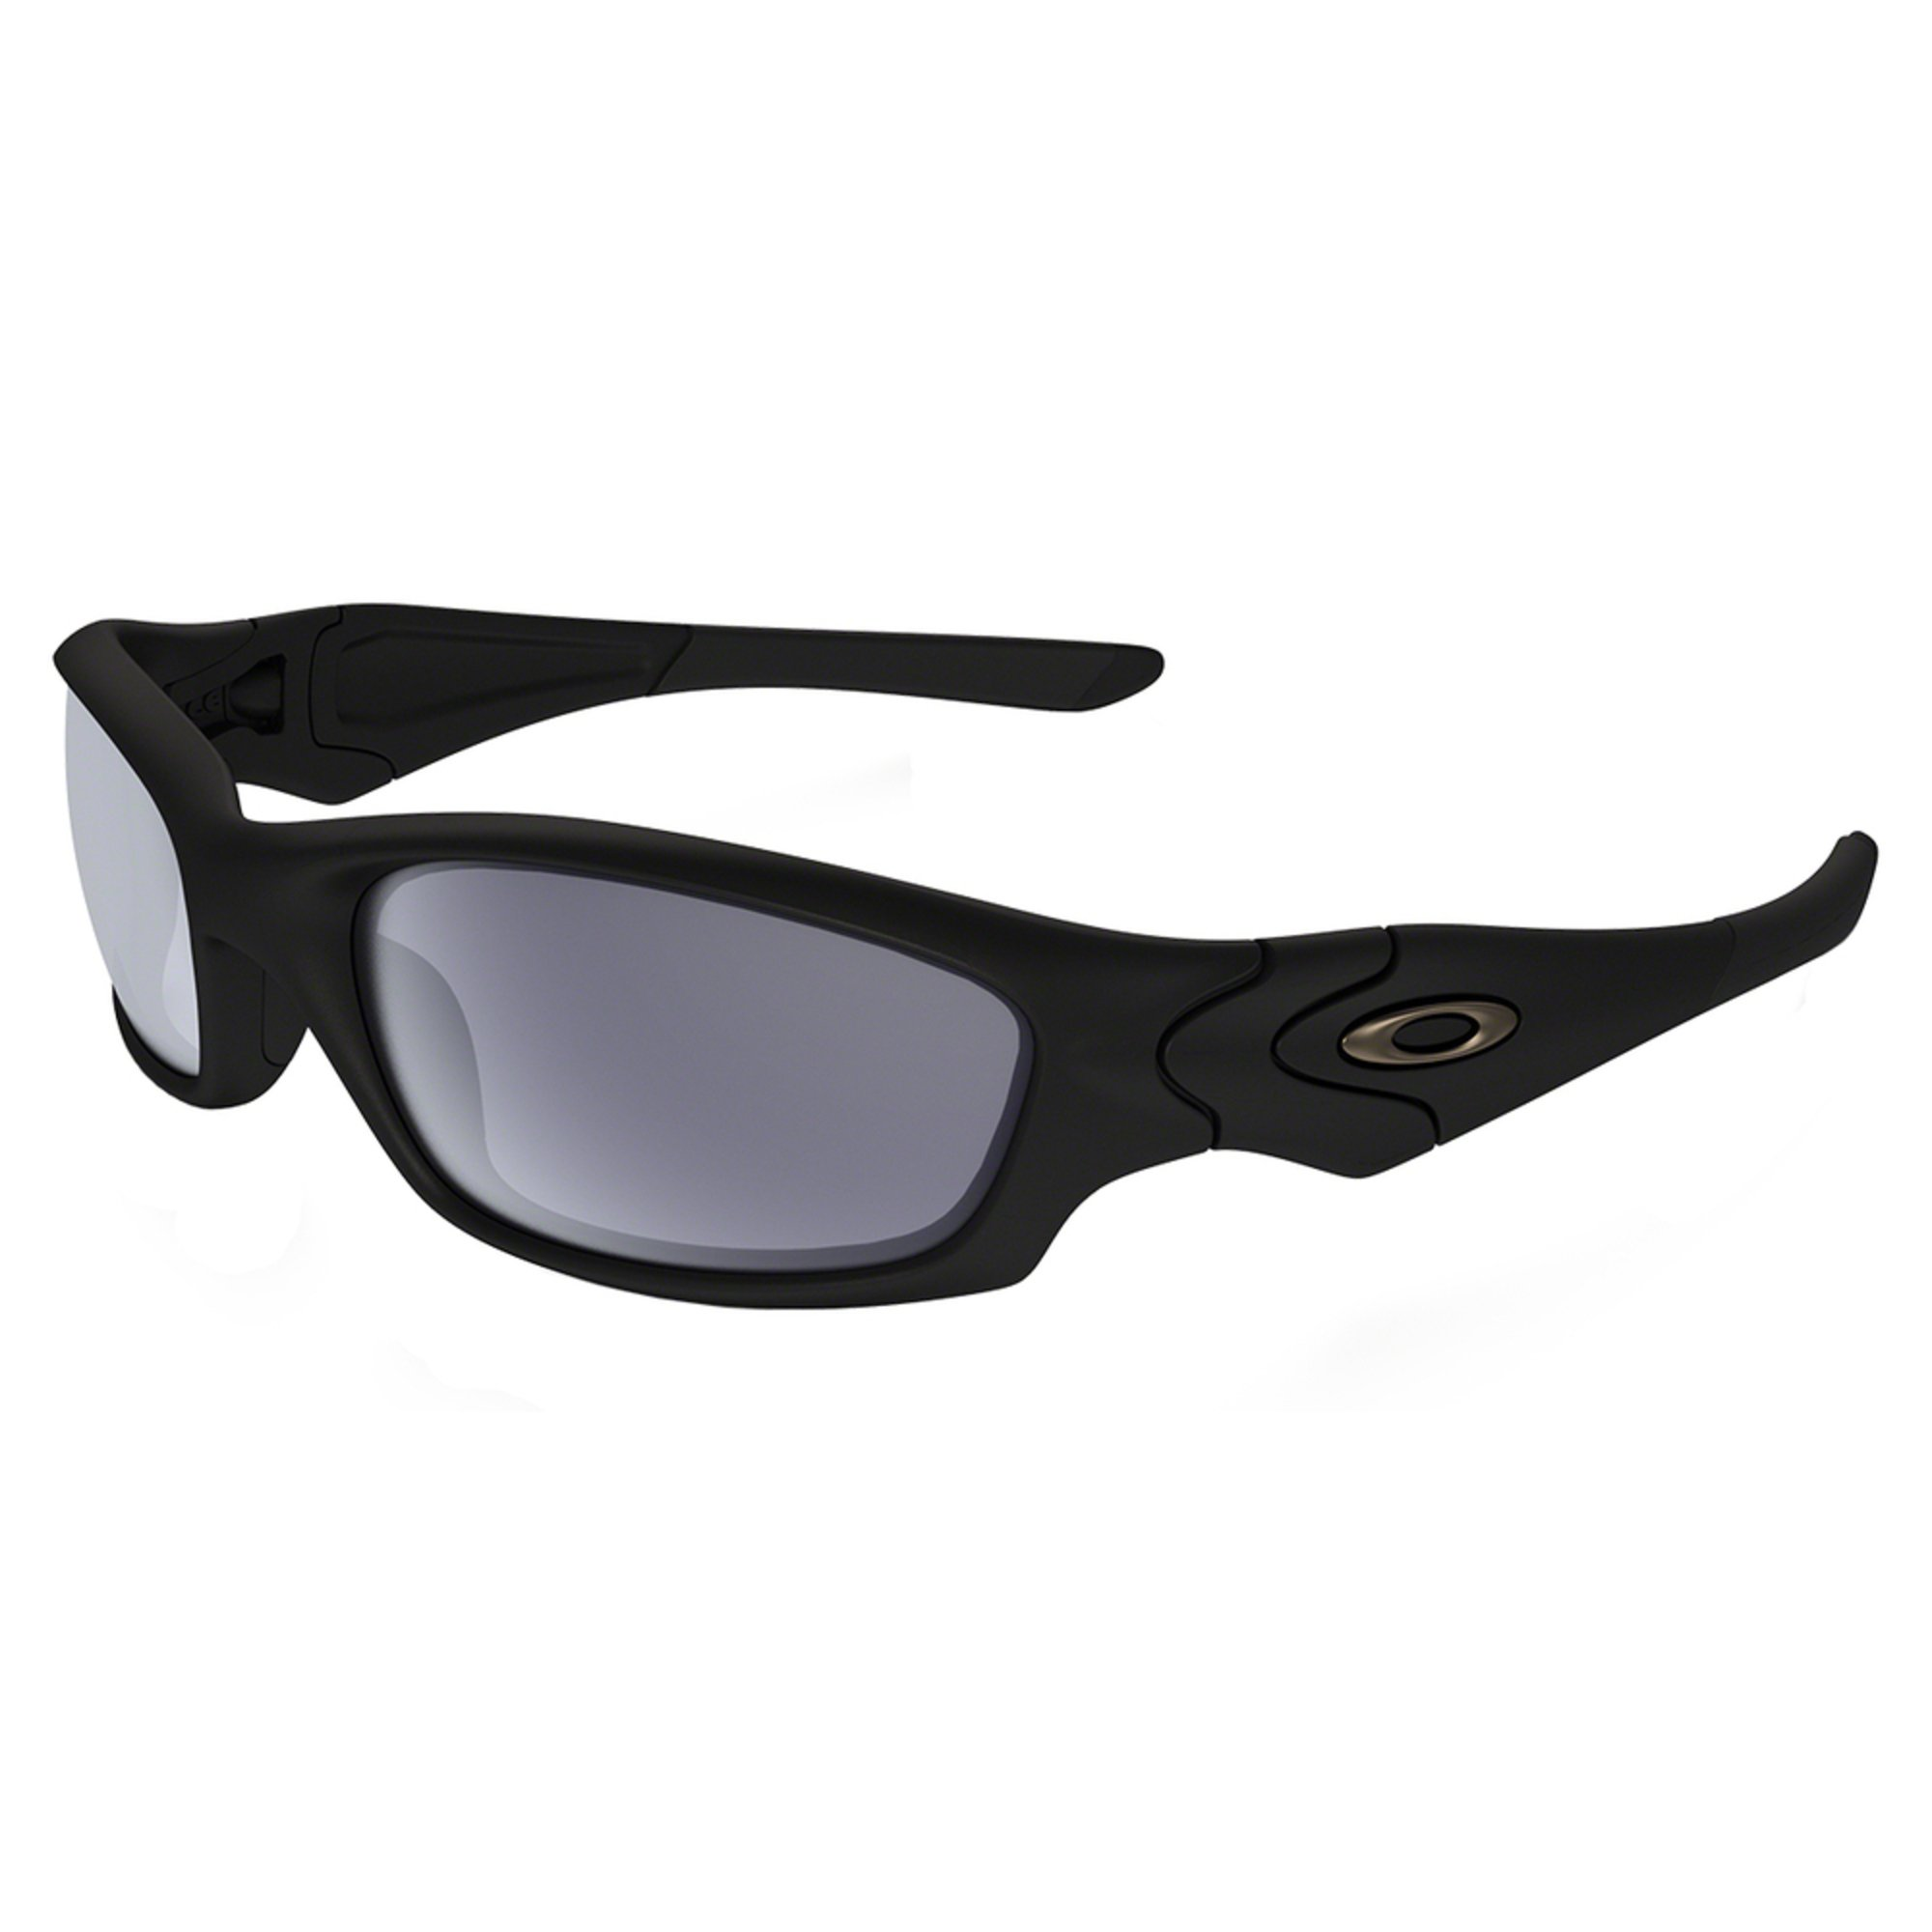 e694475525b Oakley. Oakley Men s SI Straight Jacket Sunglasses